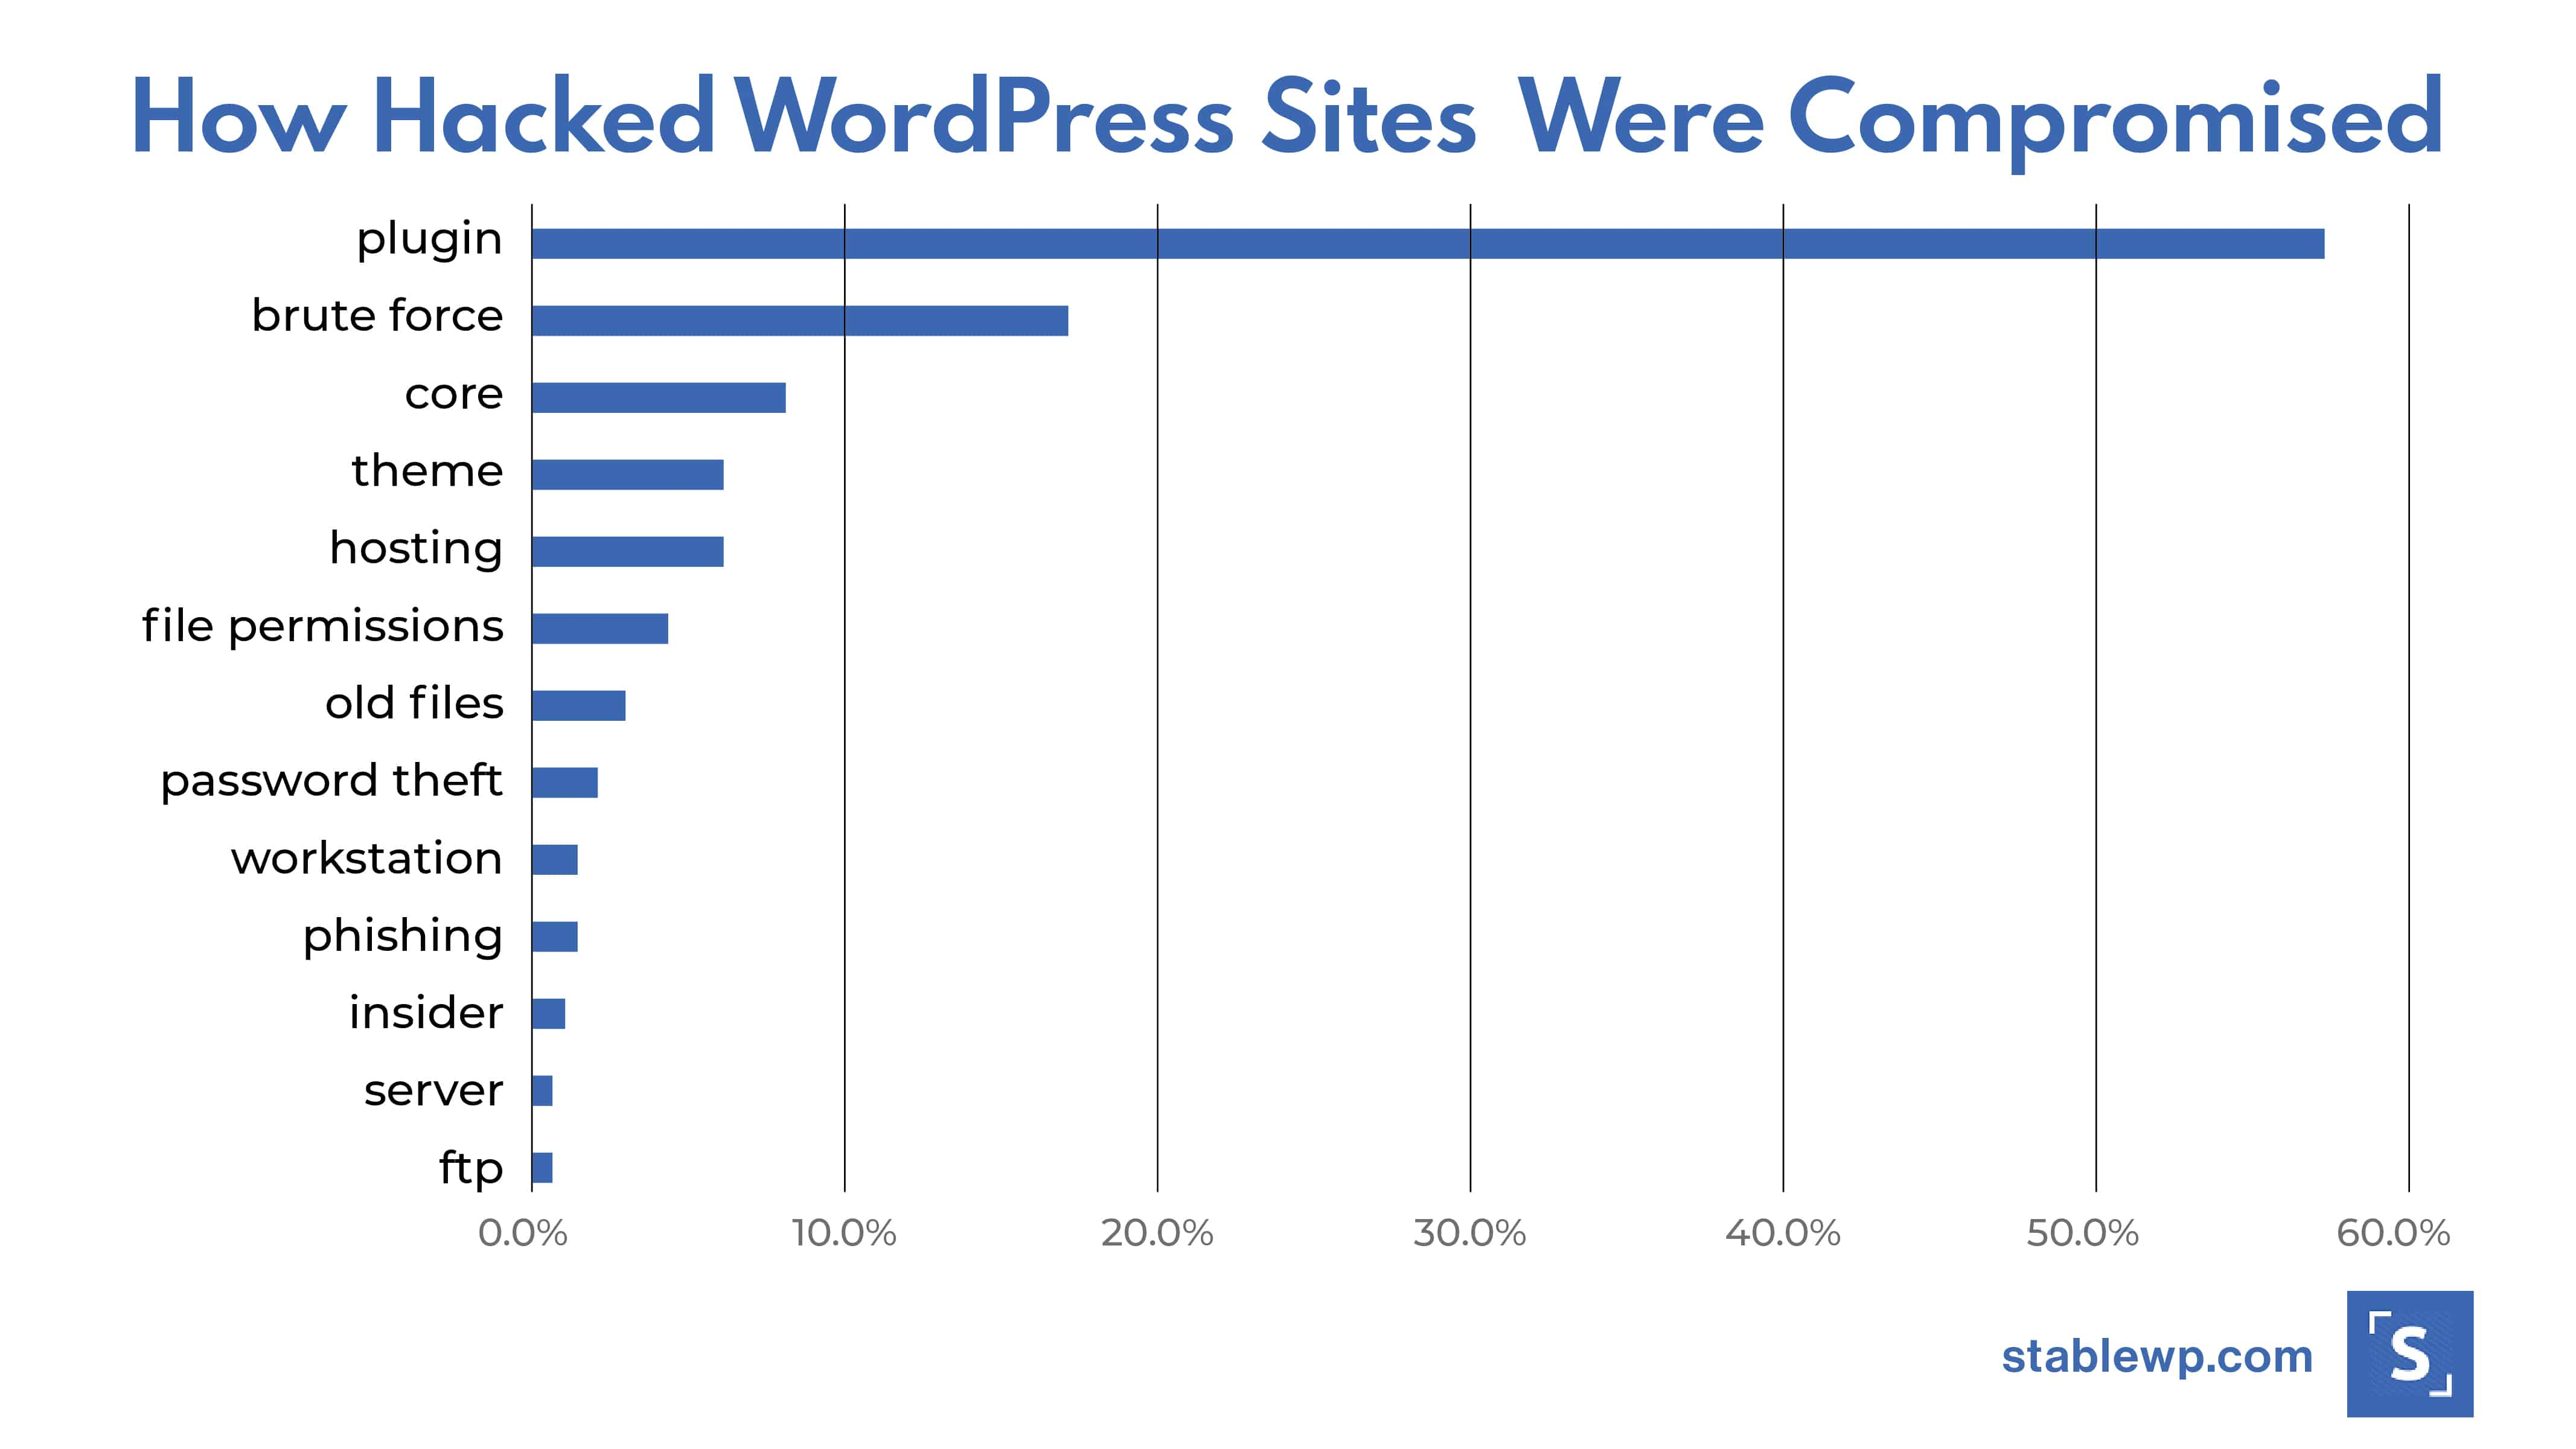 Graph showing how hacked WordPress sites were compromised